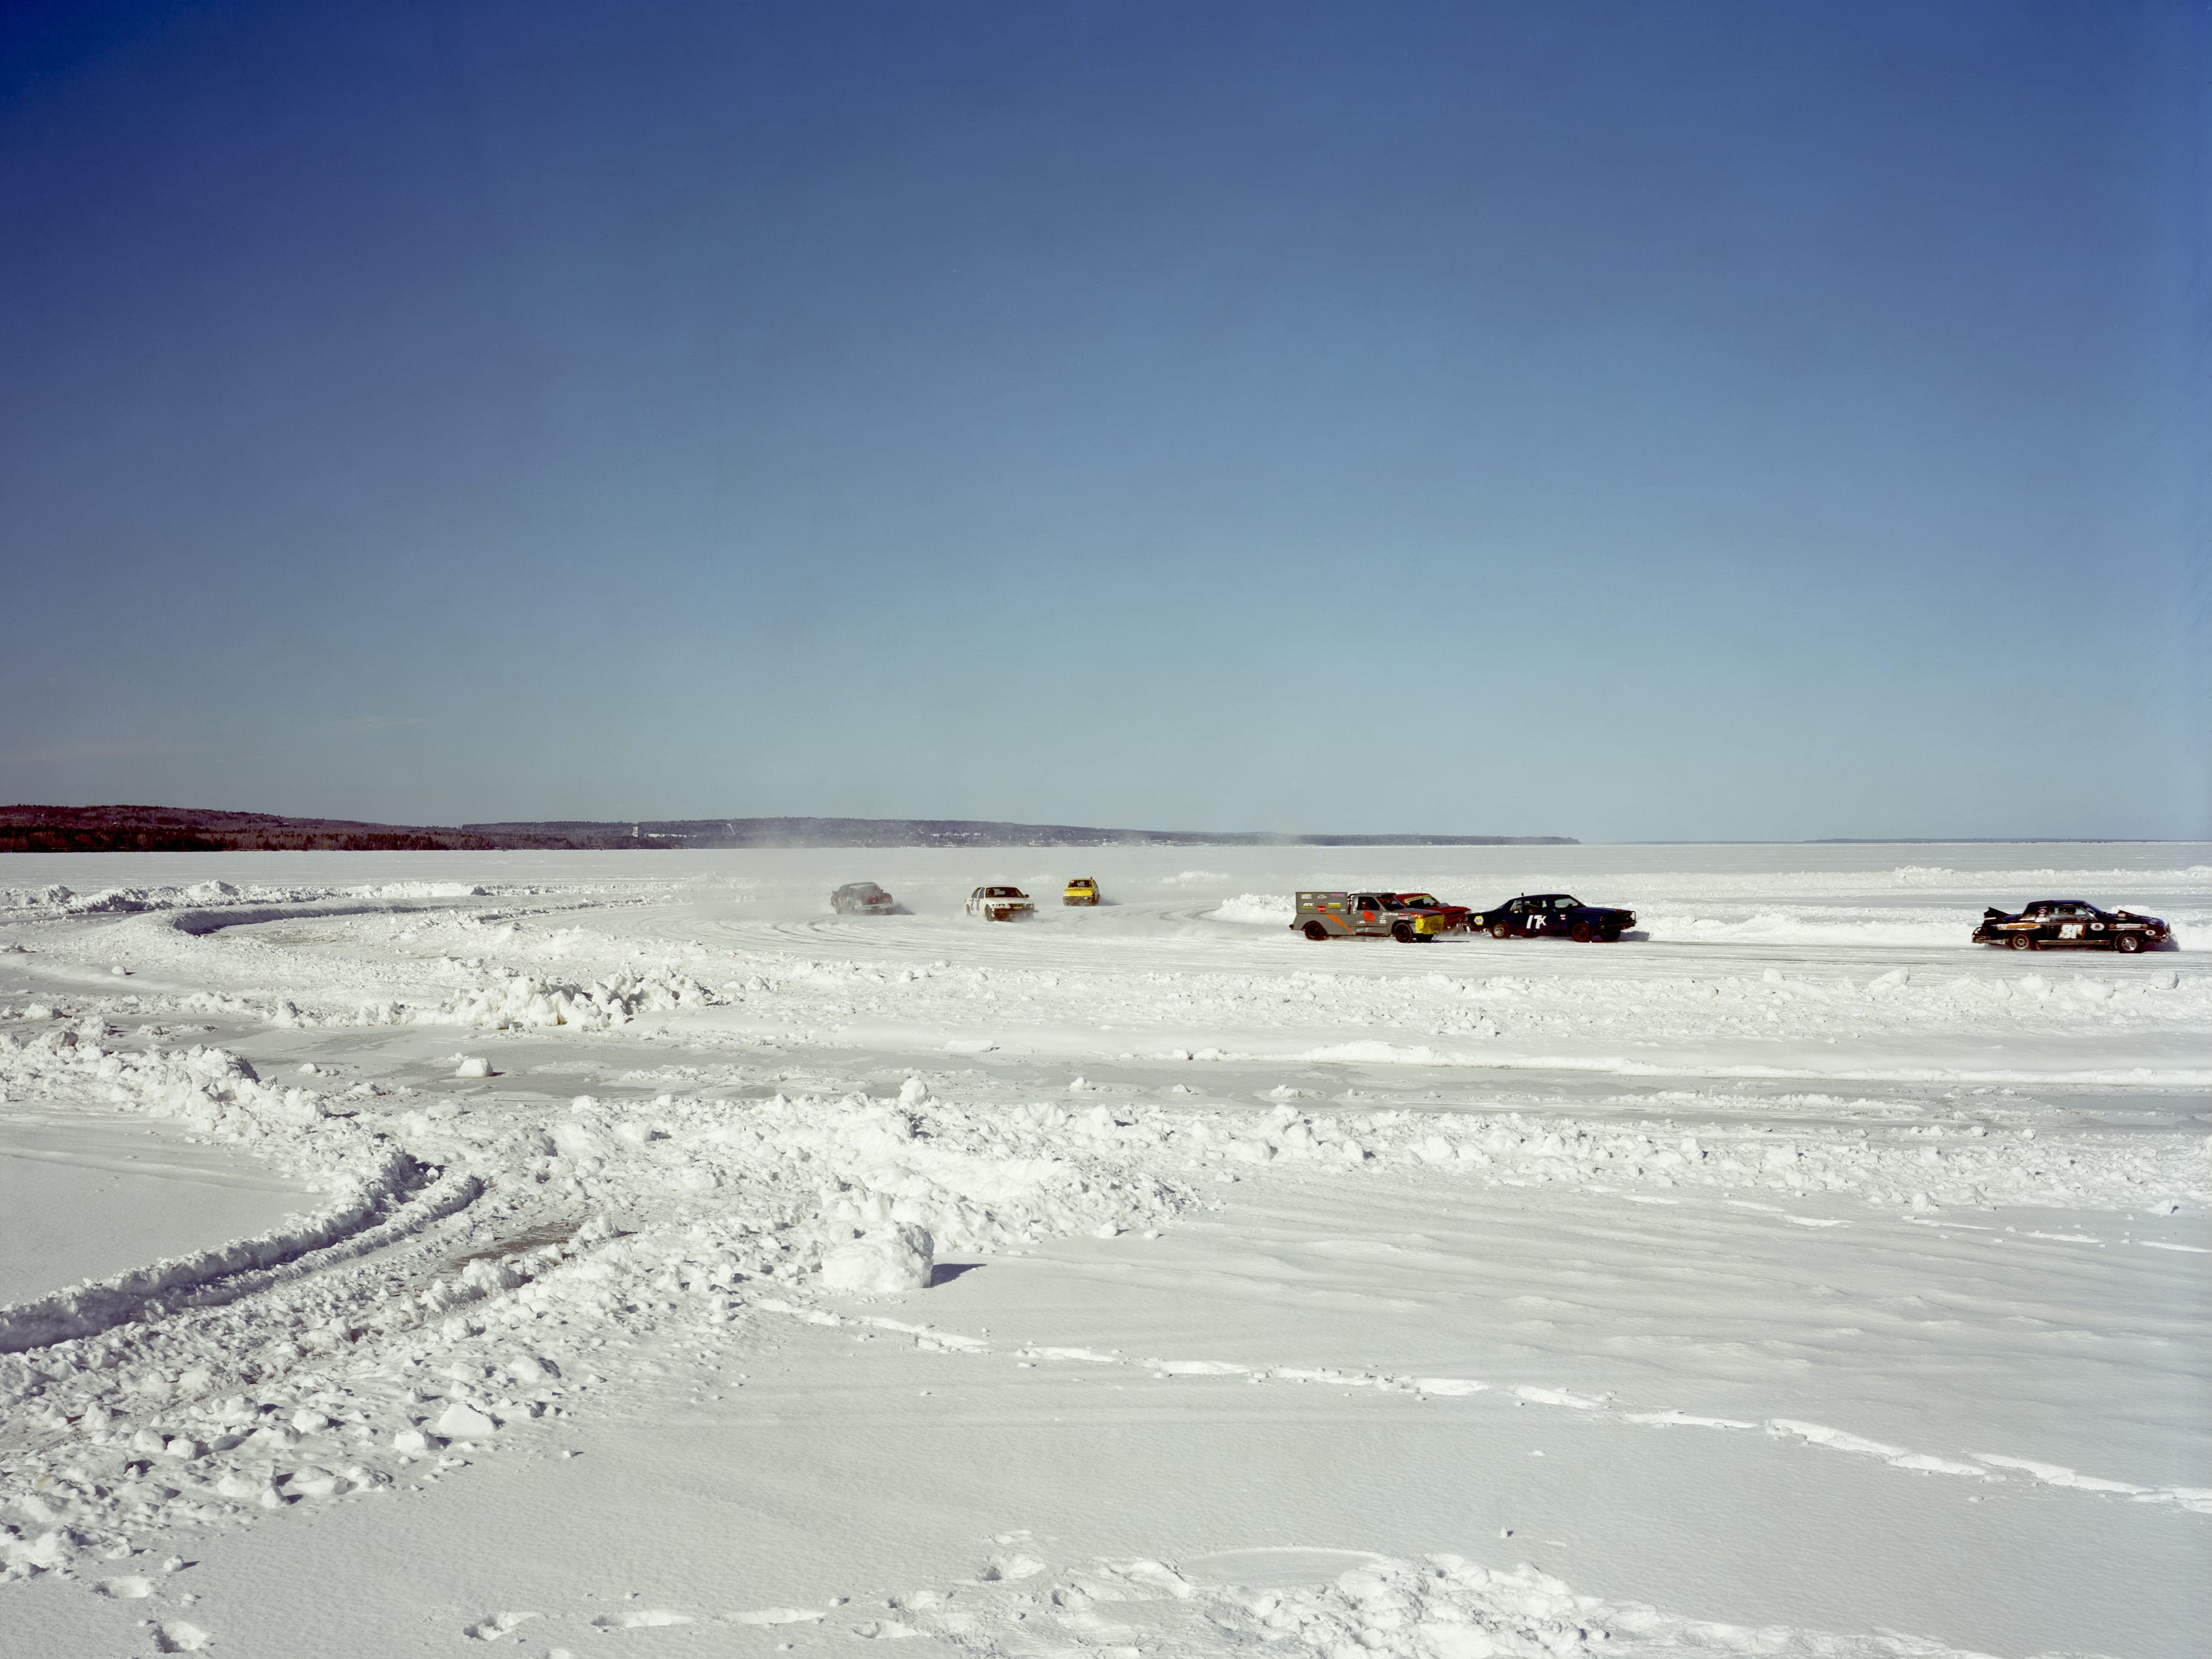 Ice Racing On Chequamegon Bay, Ashland. March 2013.